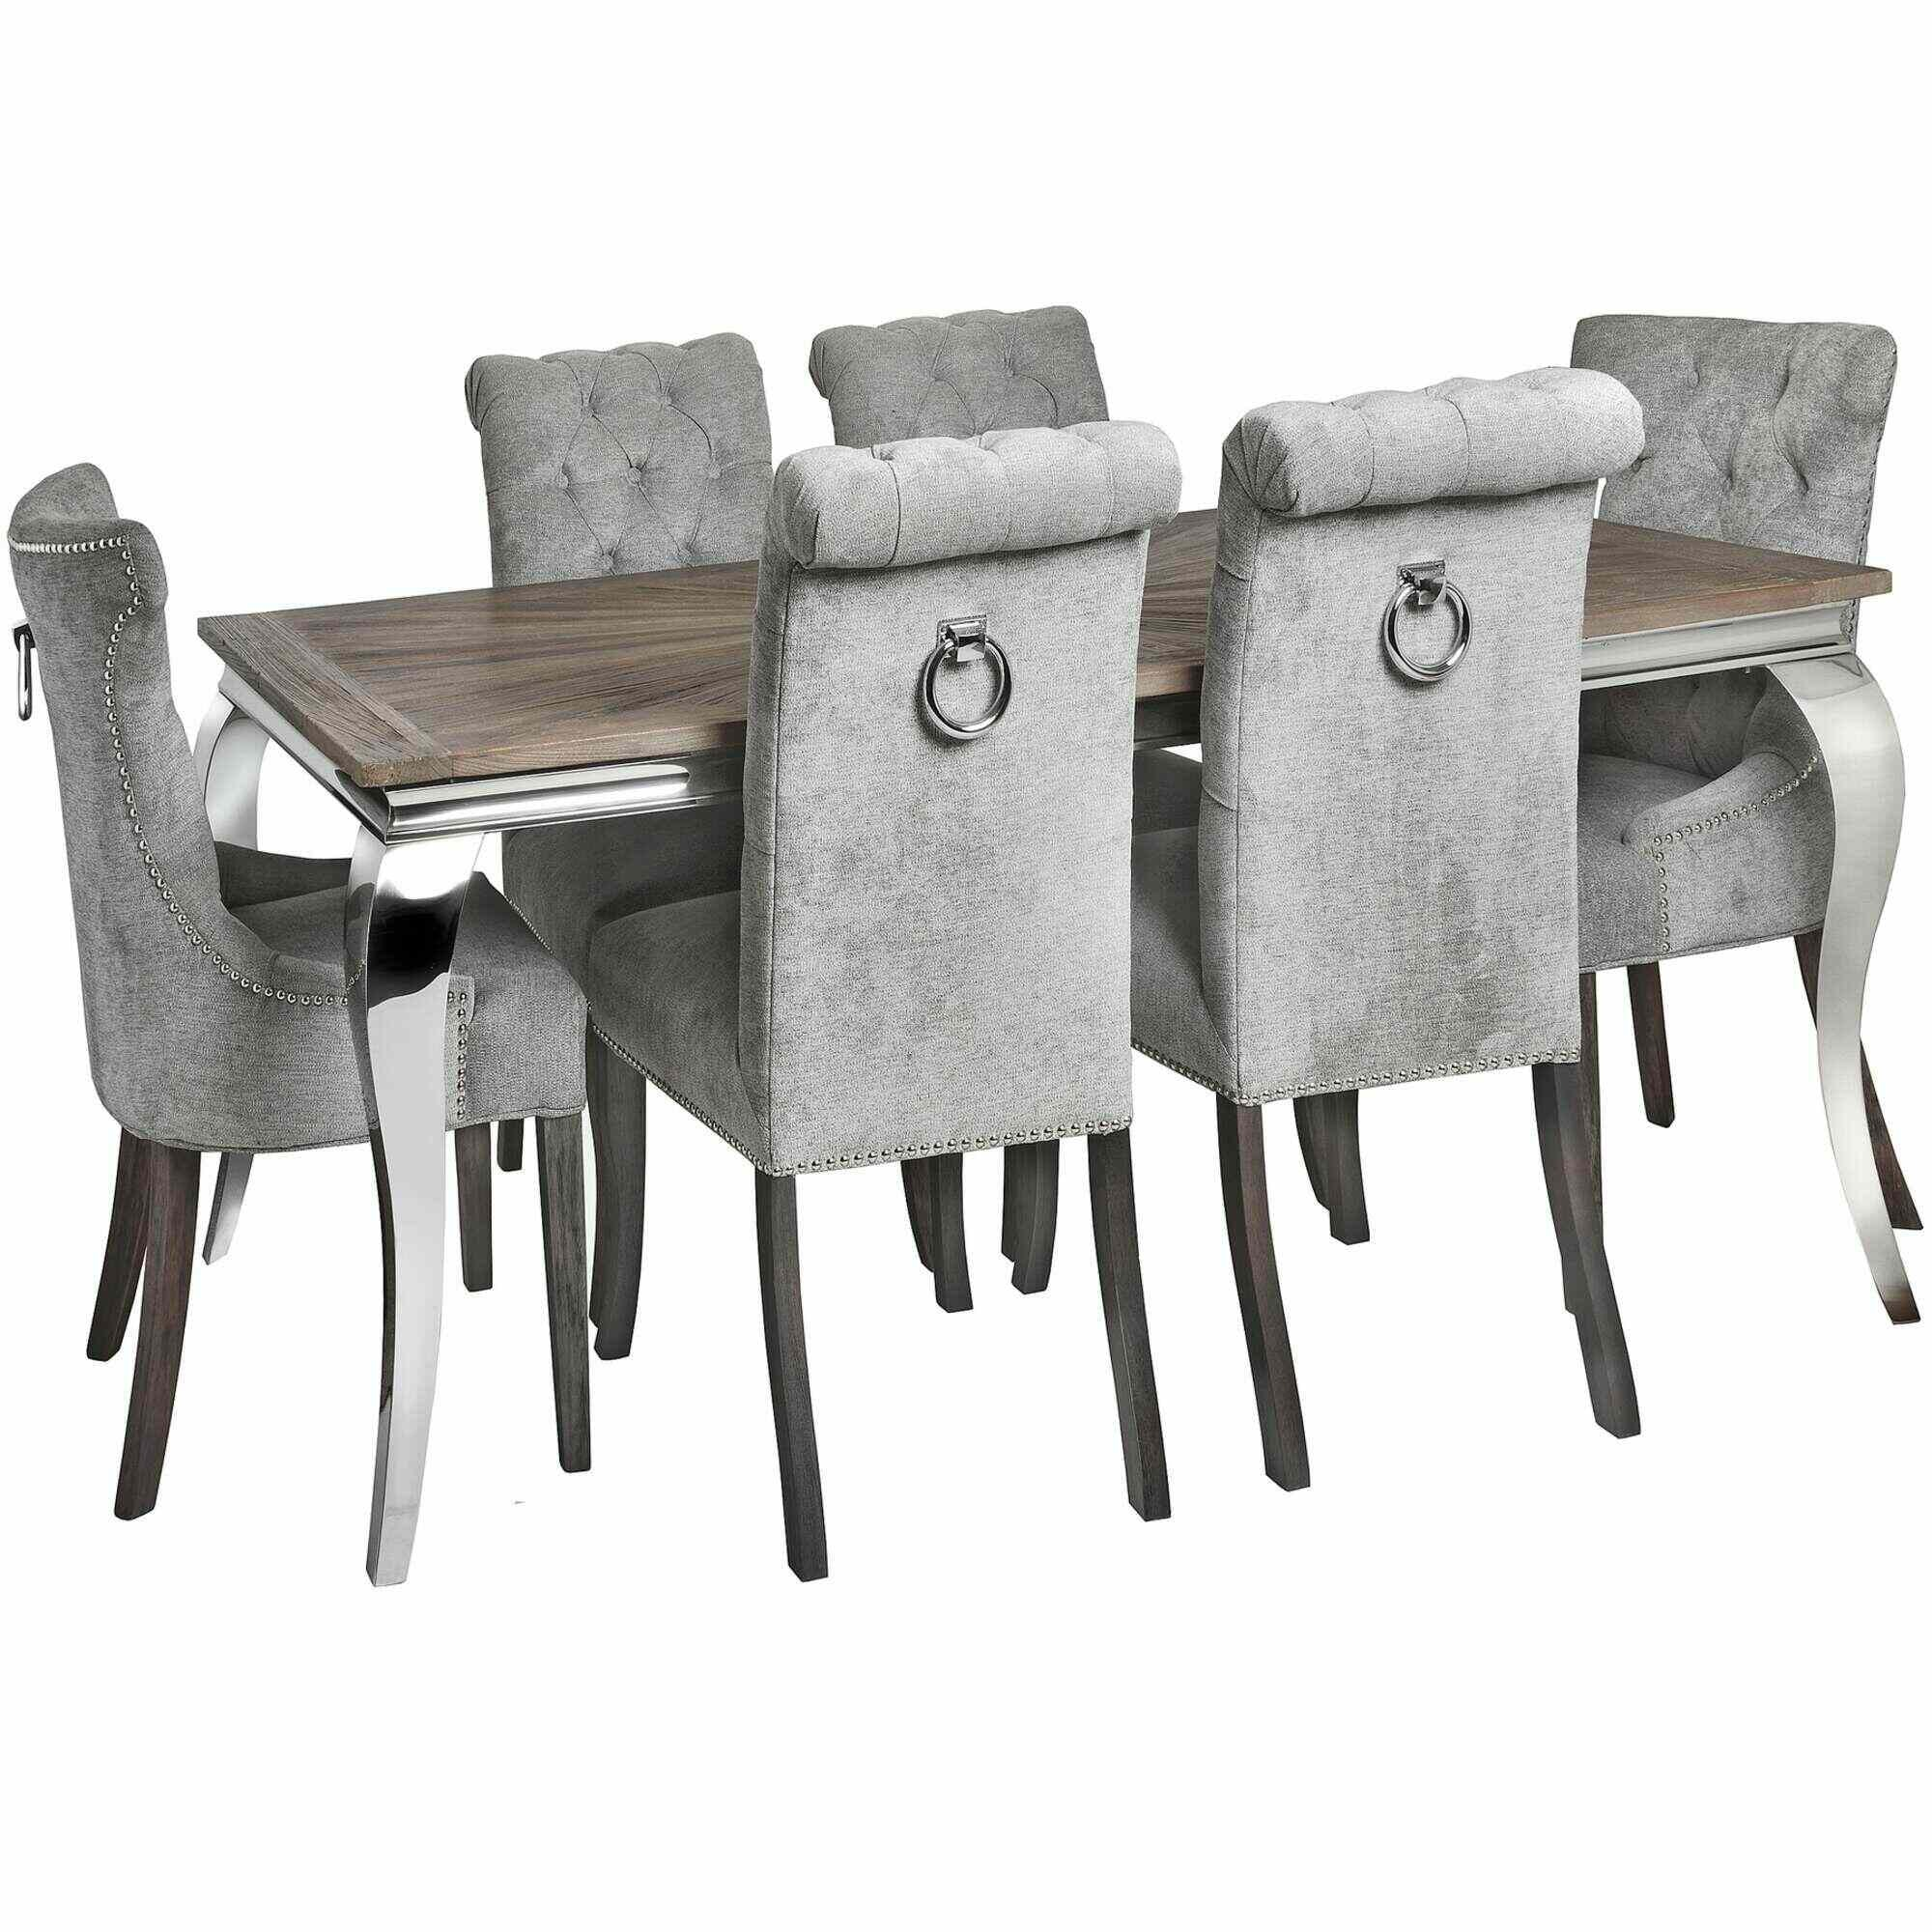 Silver High Wing Back Knocker Dining Chair Dining Chair Dining Room